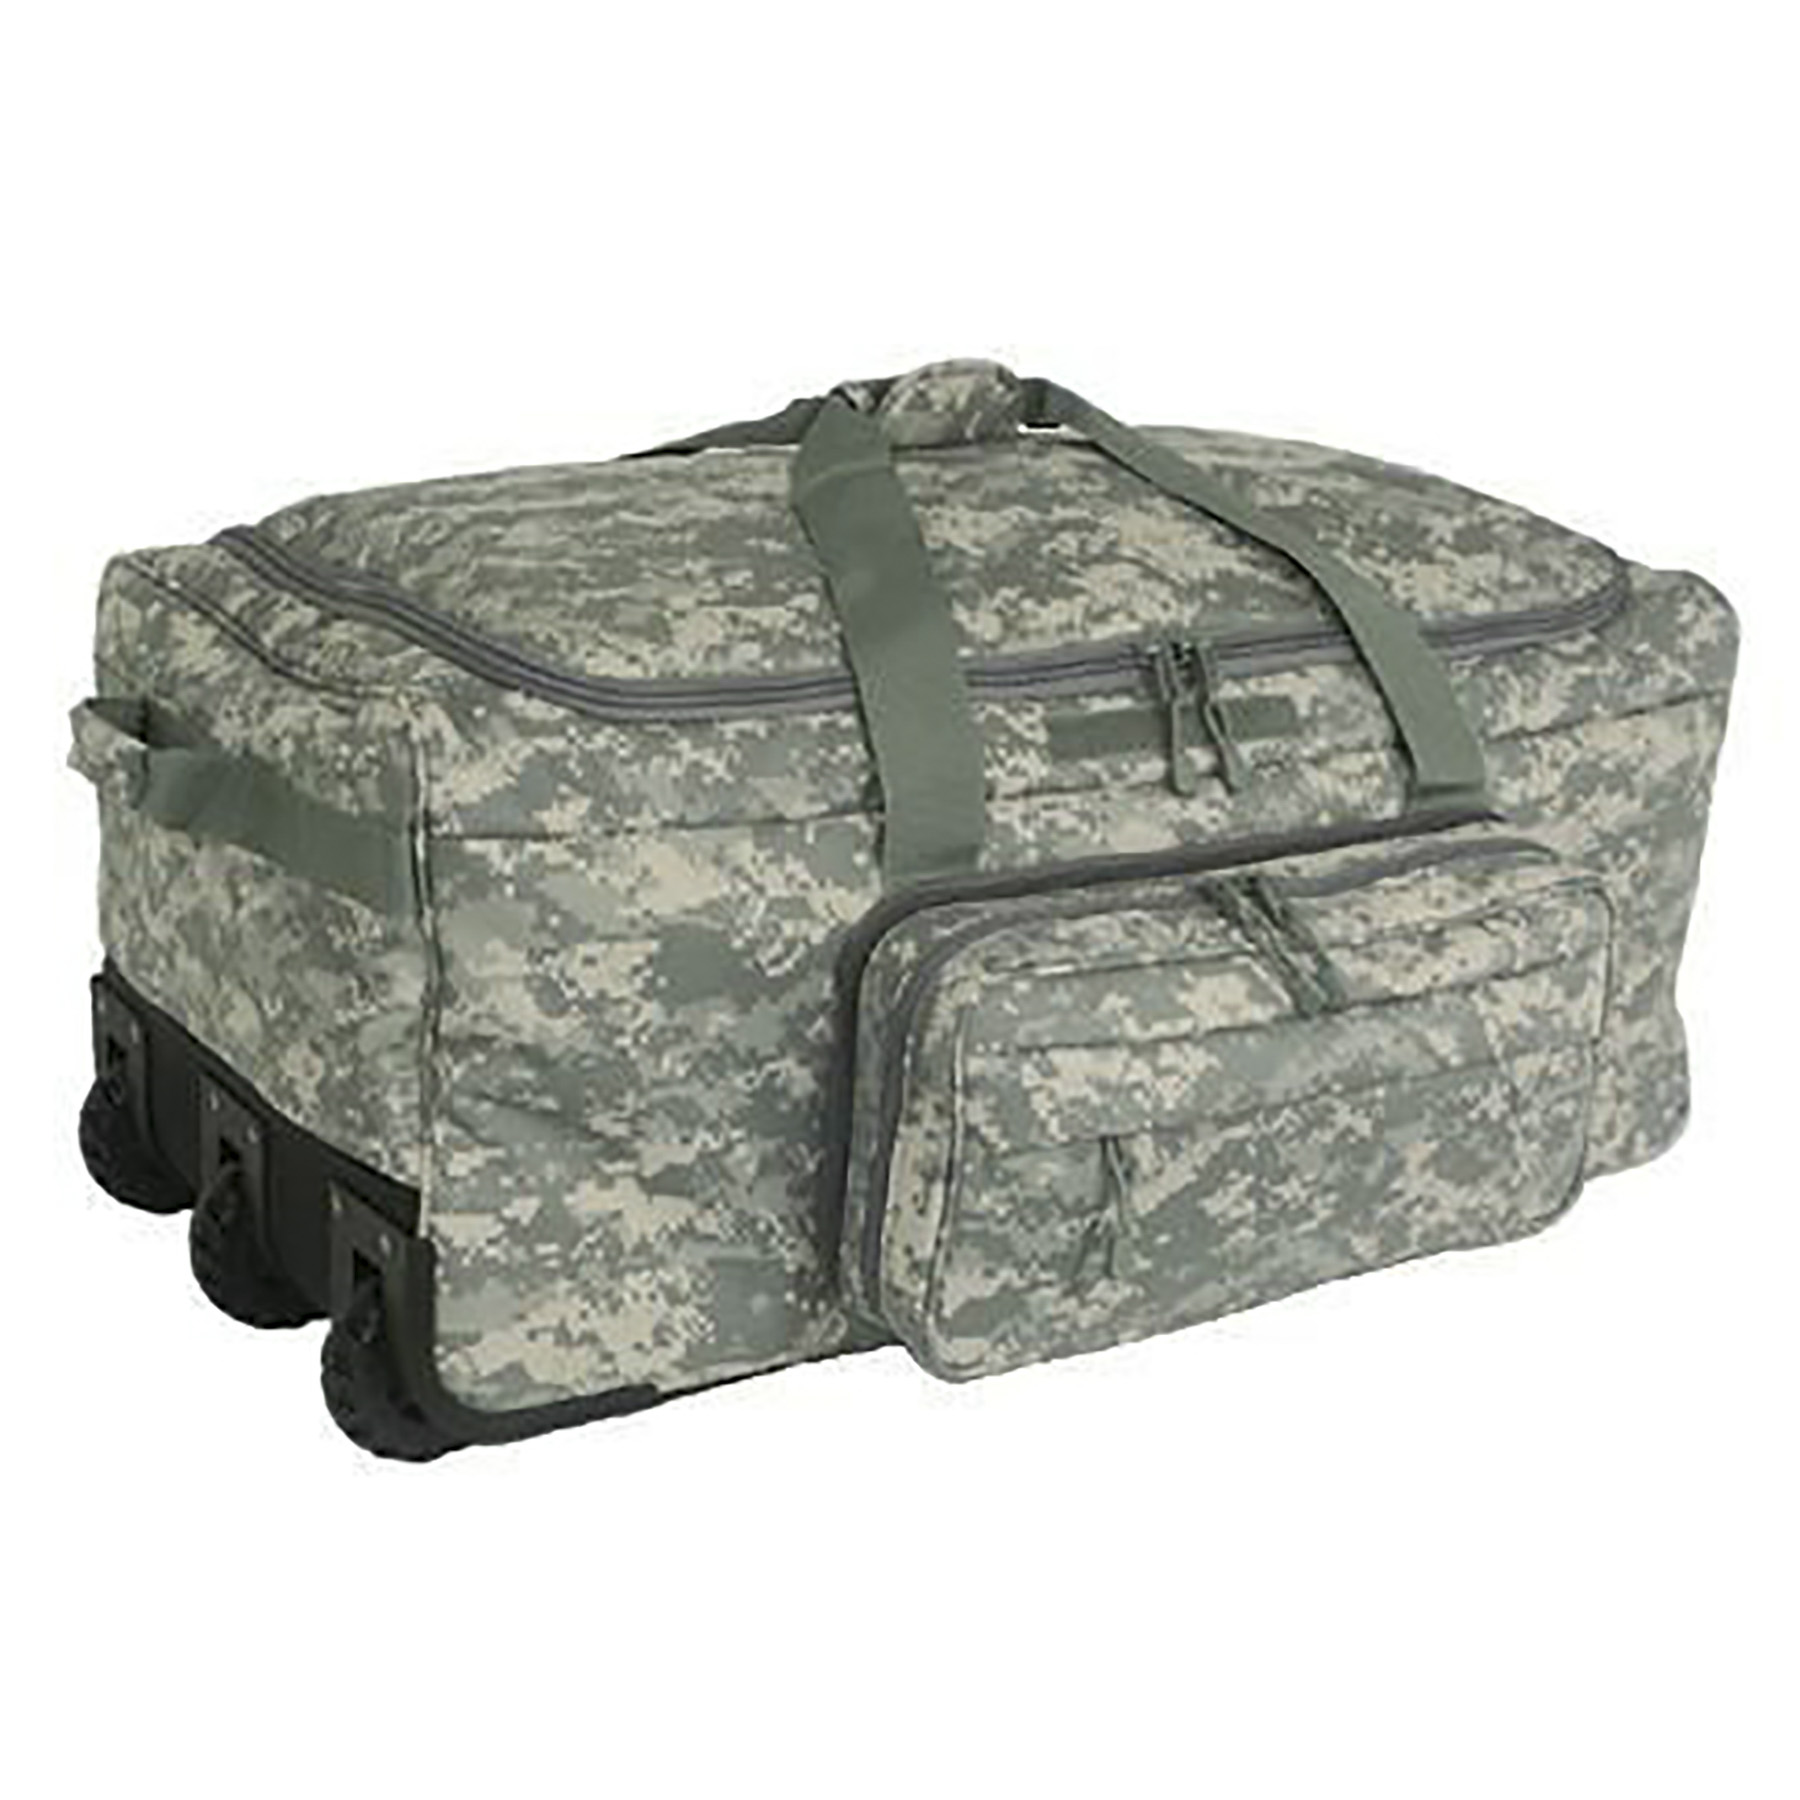 GSA approved Tri-wheeled Deployment/Container Bag